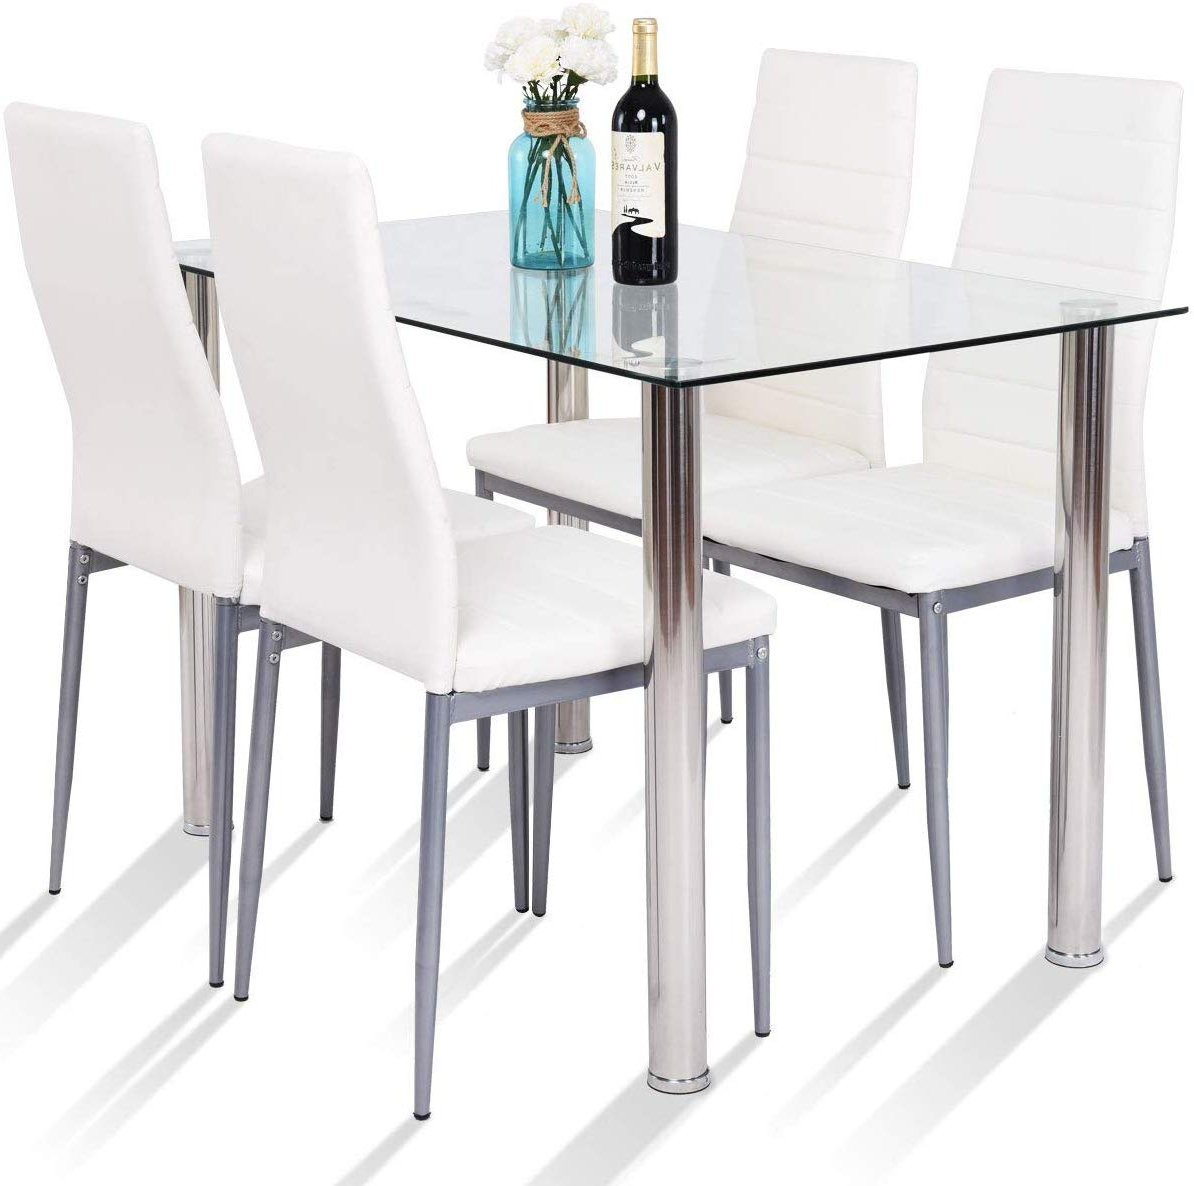 Fashionable Steel And Glass Rectangle Dining Tables Pertaining To Amazon – Tangkula 5 Pcs Dining Table Set Modern Tempered (Gallery 6 of 30)